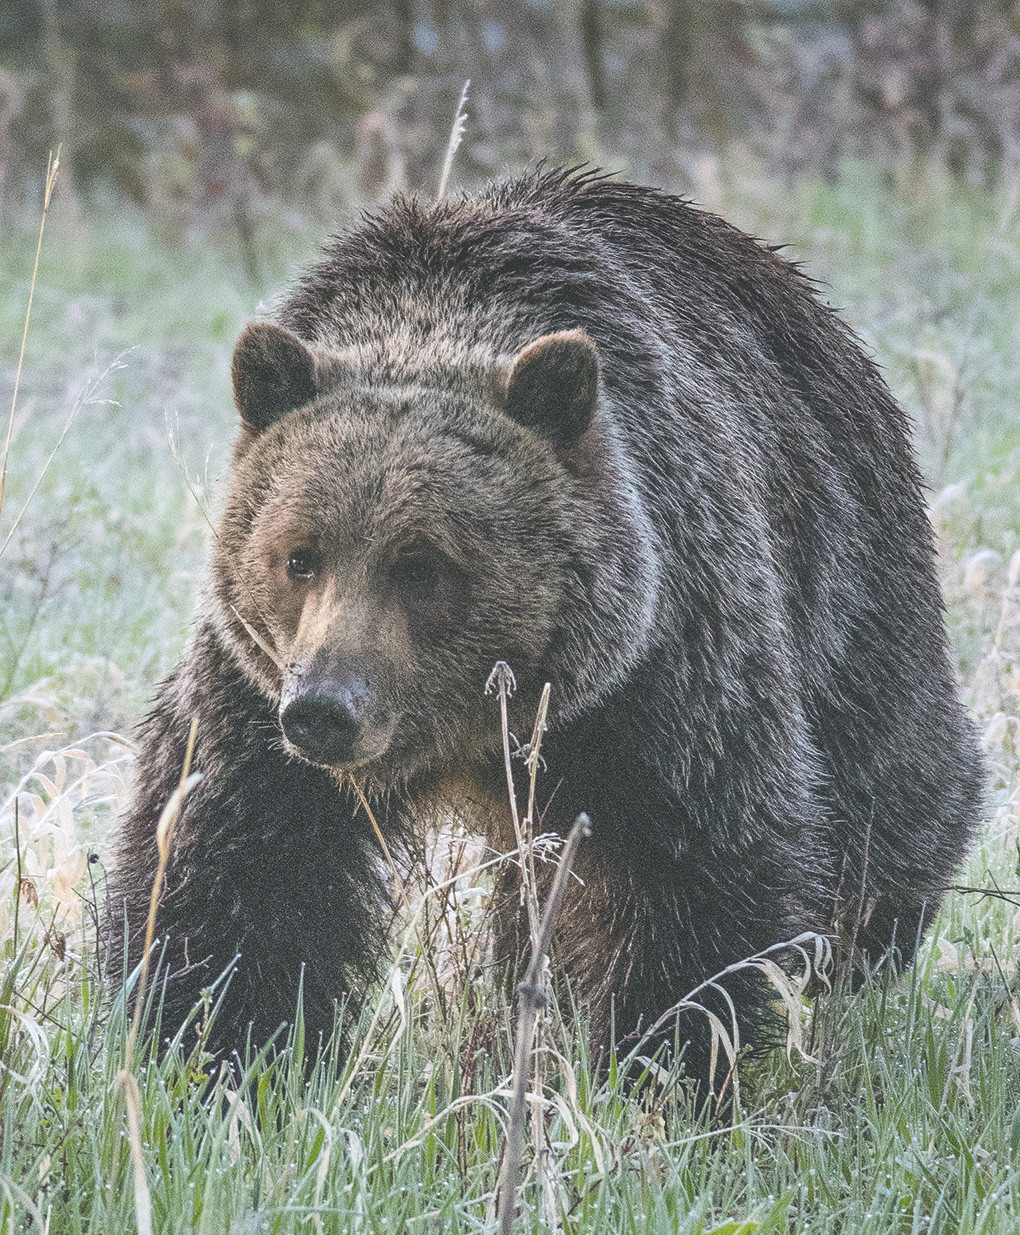 A grizzly bear browses for a morning snack on the North Fork earlier this year. Litigation experienced during the delisting of the species is one of the reasons why Gov. Matt Mead, U.S. Sen. John Barrasso and others are looking for ways to amend the Endangered Species Act.